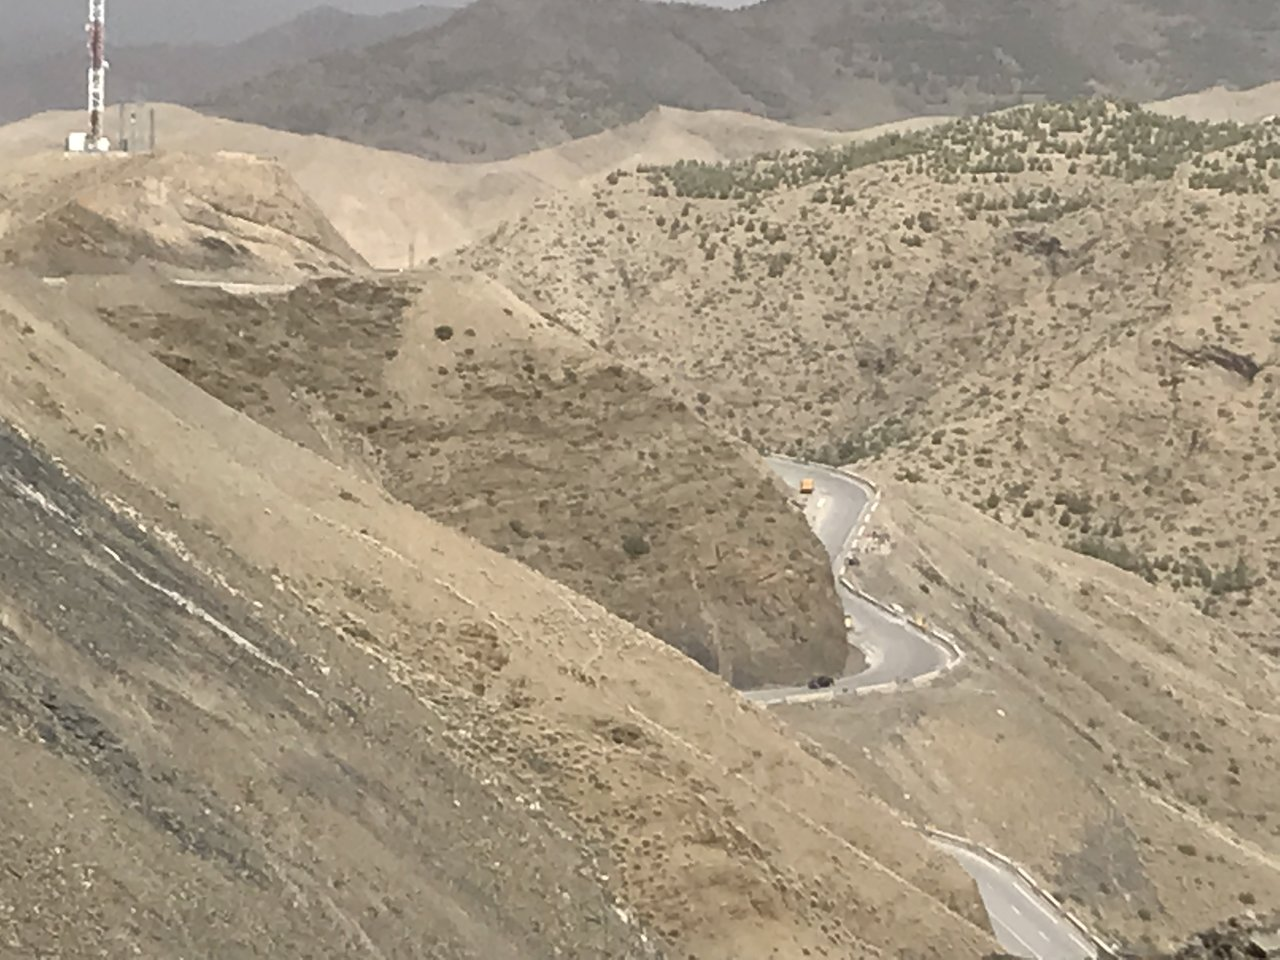 Coming from the High Atlas Mountains | Photo taken by Chris M